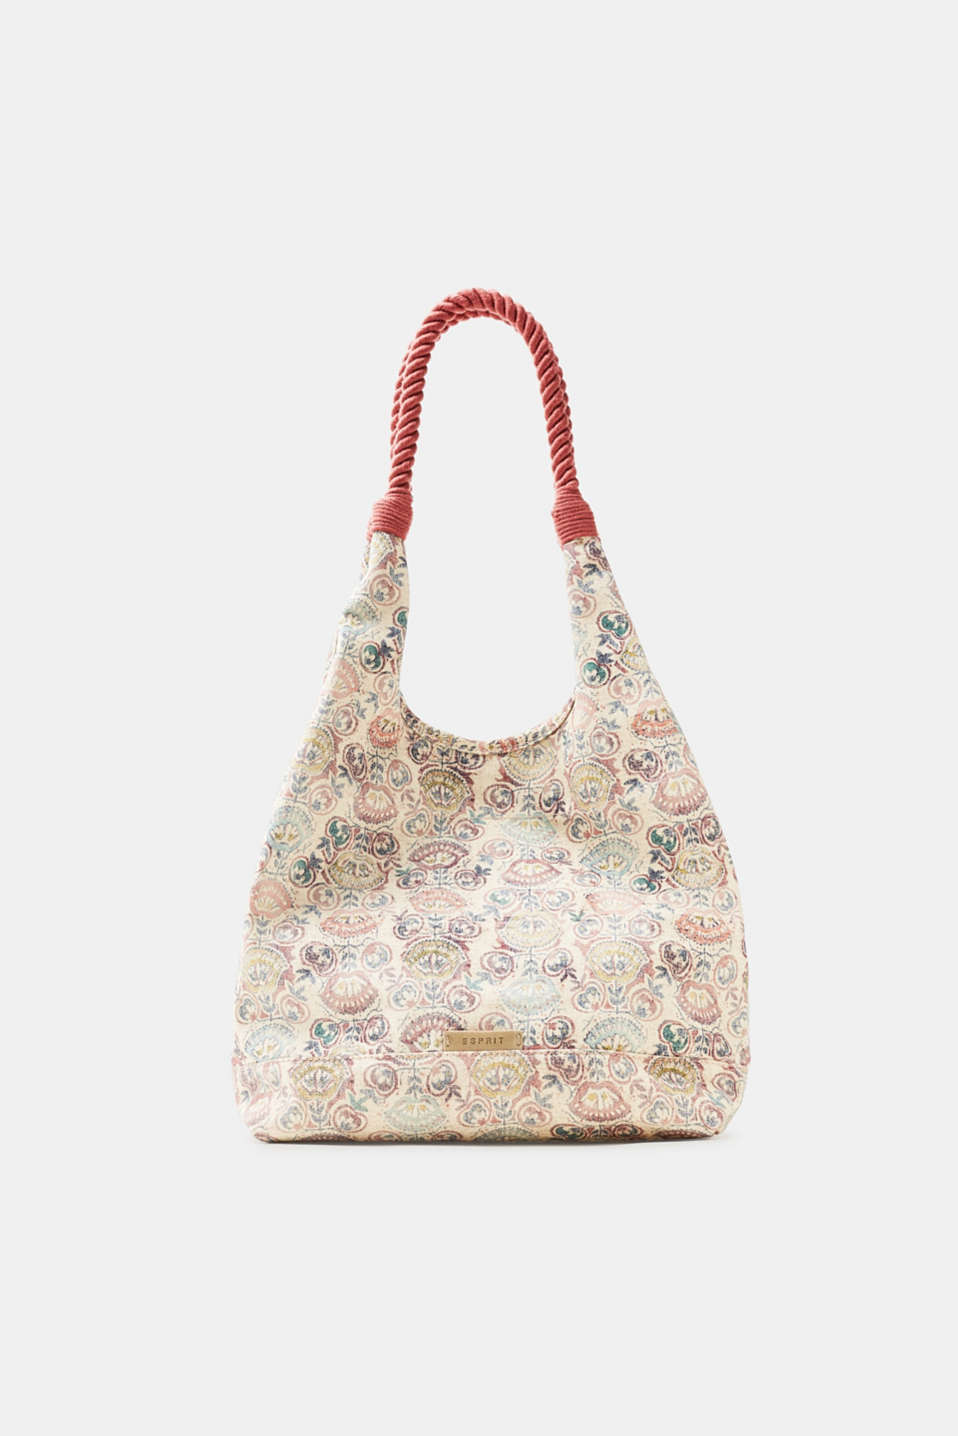 Esprit - Patterned shoulder bag in a rustic wash